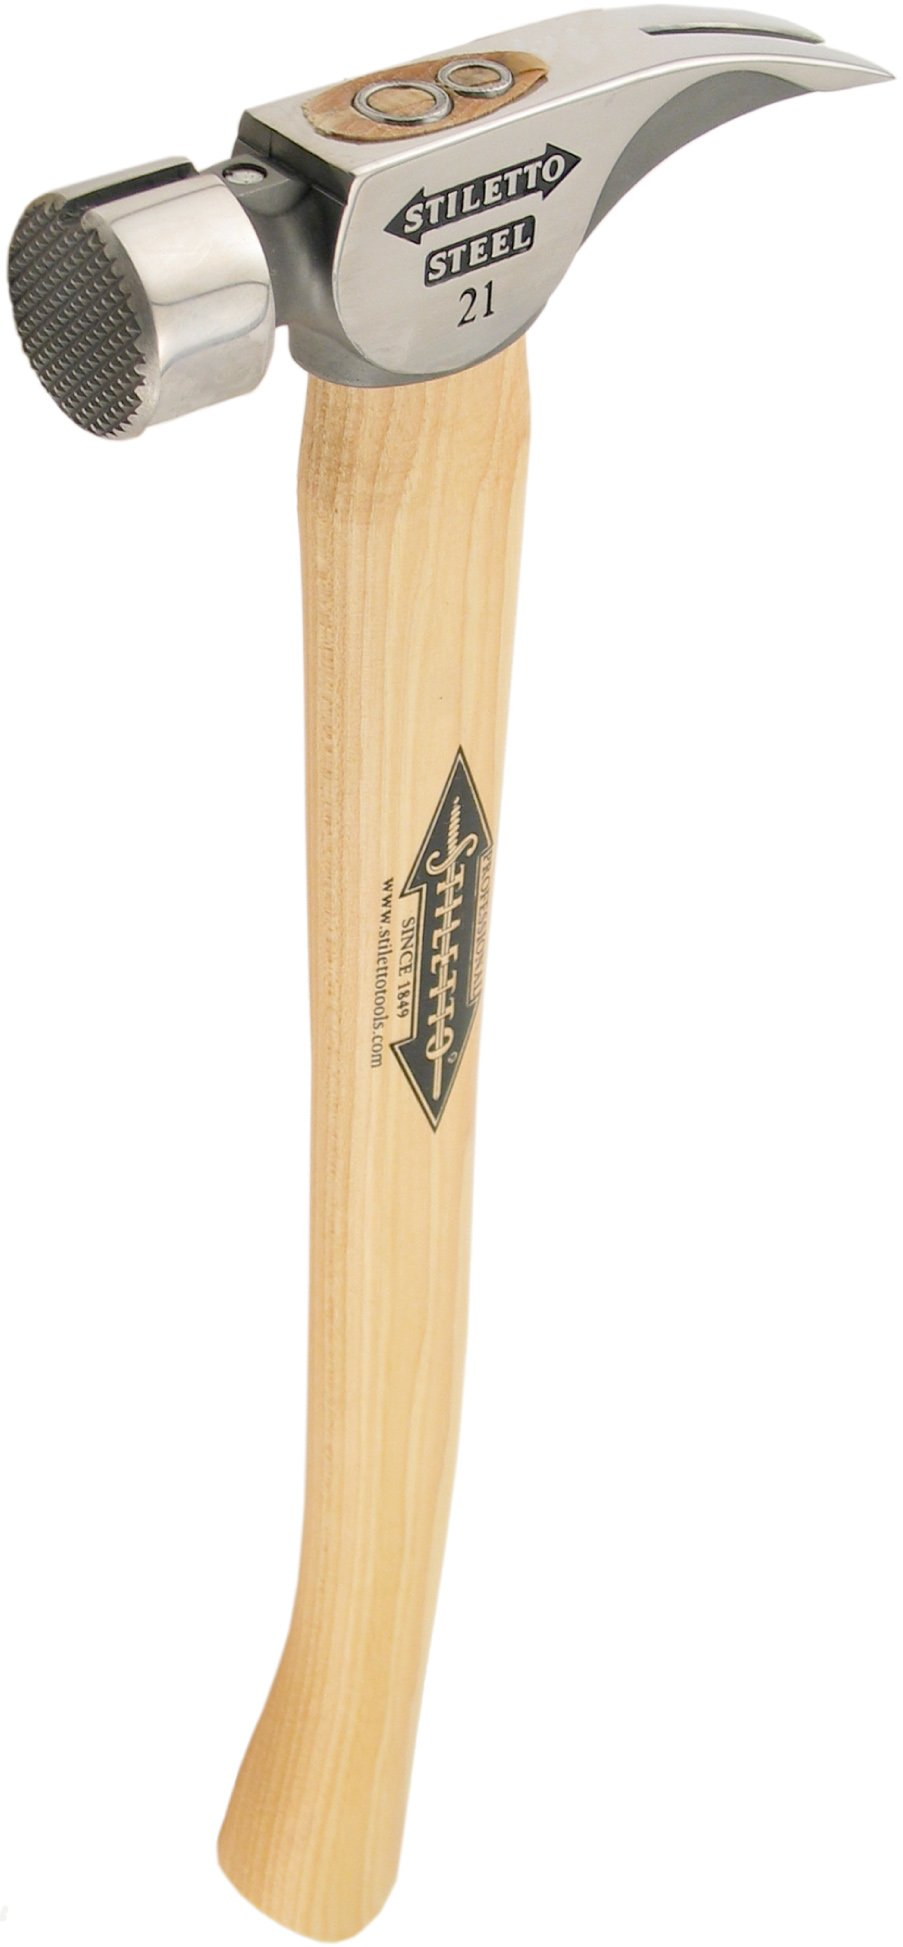 Stiletto REN21MC Steel 21 Milled Face Hammer with a Curved 18'' Hickory Handle